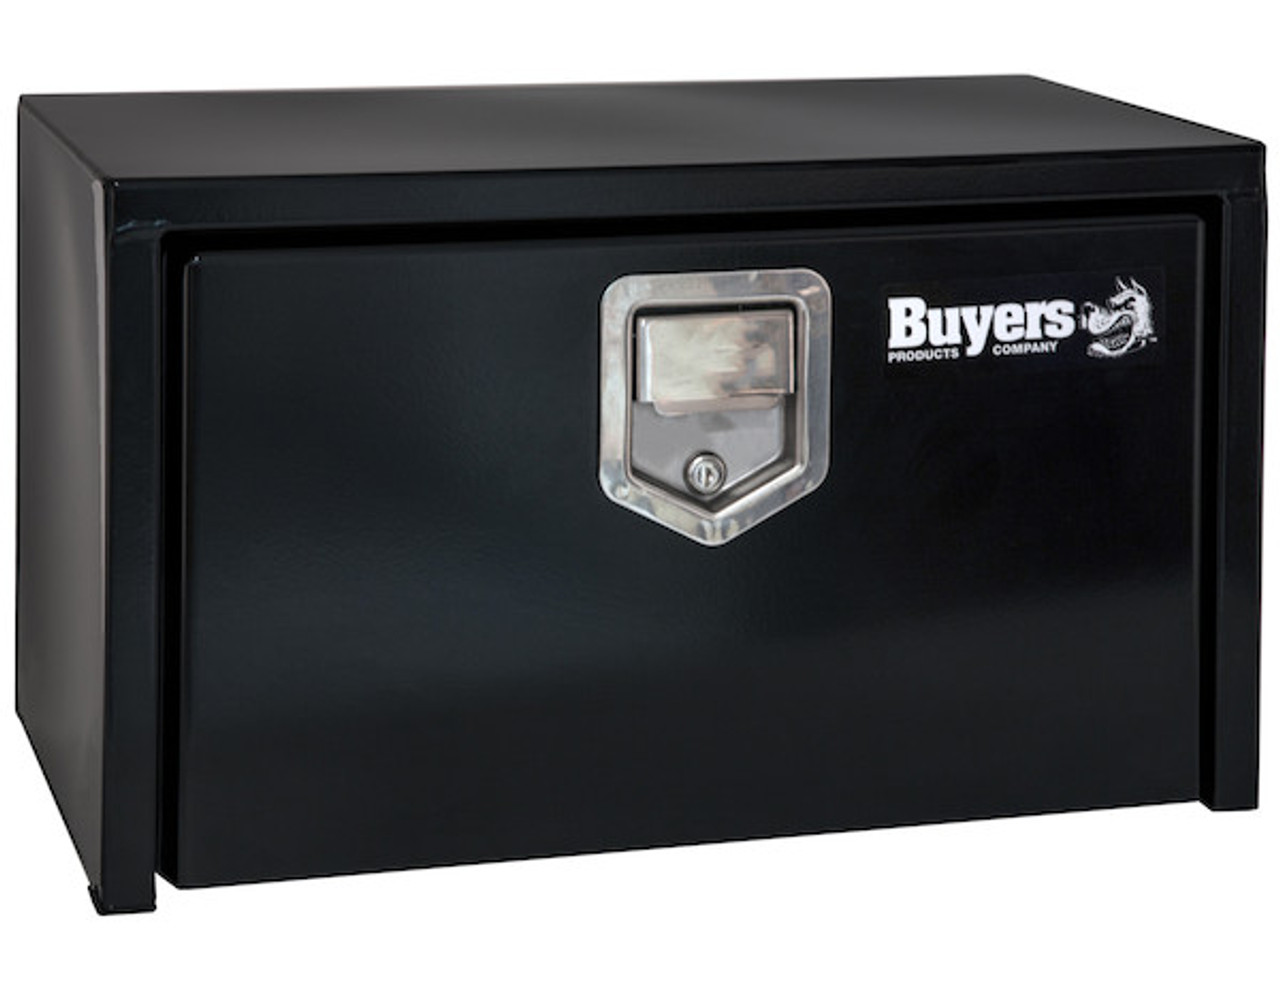 1703100 BUYERS PRODUCTS BLACK STEEL UNDERBODY TRUCK BOX WITH PADDLE LATCH TOOLBOX